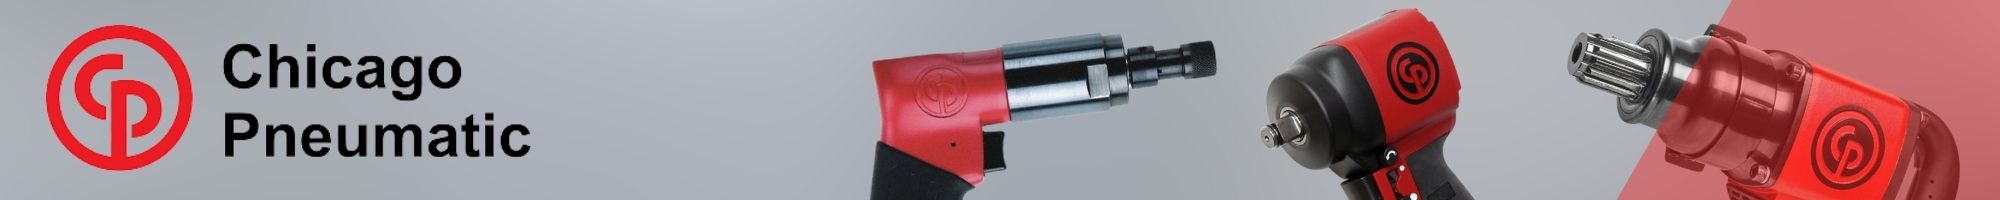 chicago-pneumatic-impact-wrenches.jpg